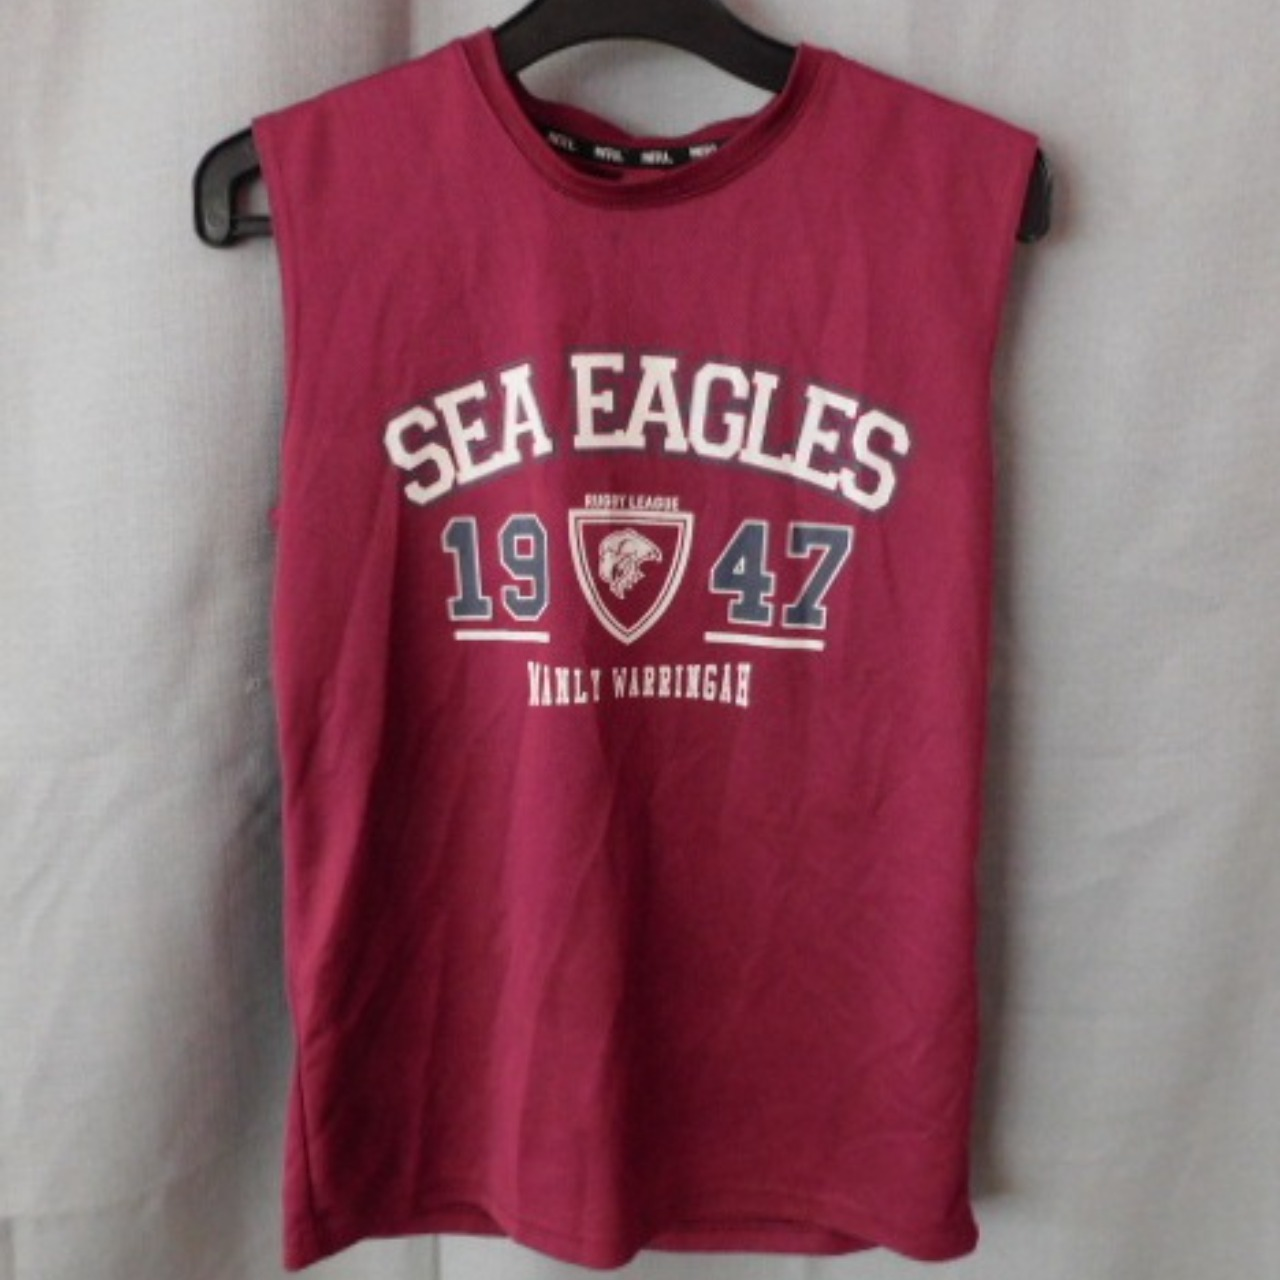 ****EOFYS**** NRL Official Supporters Youths Sea Eagles Sleeveless T-shirt Size S